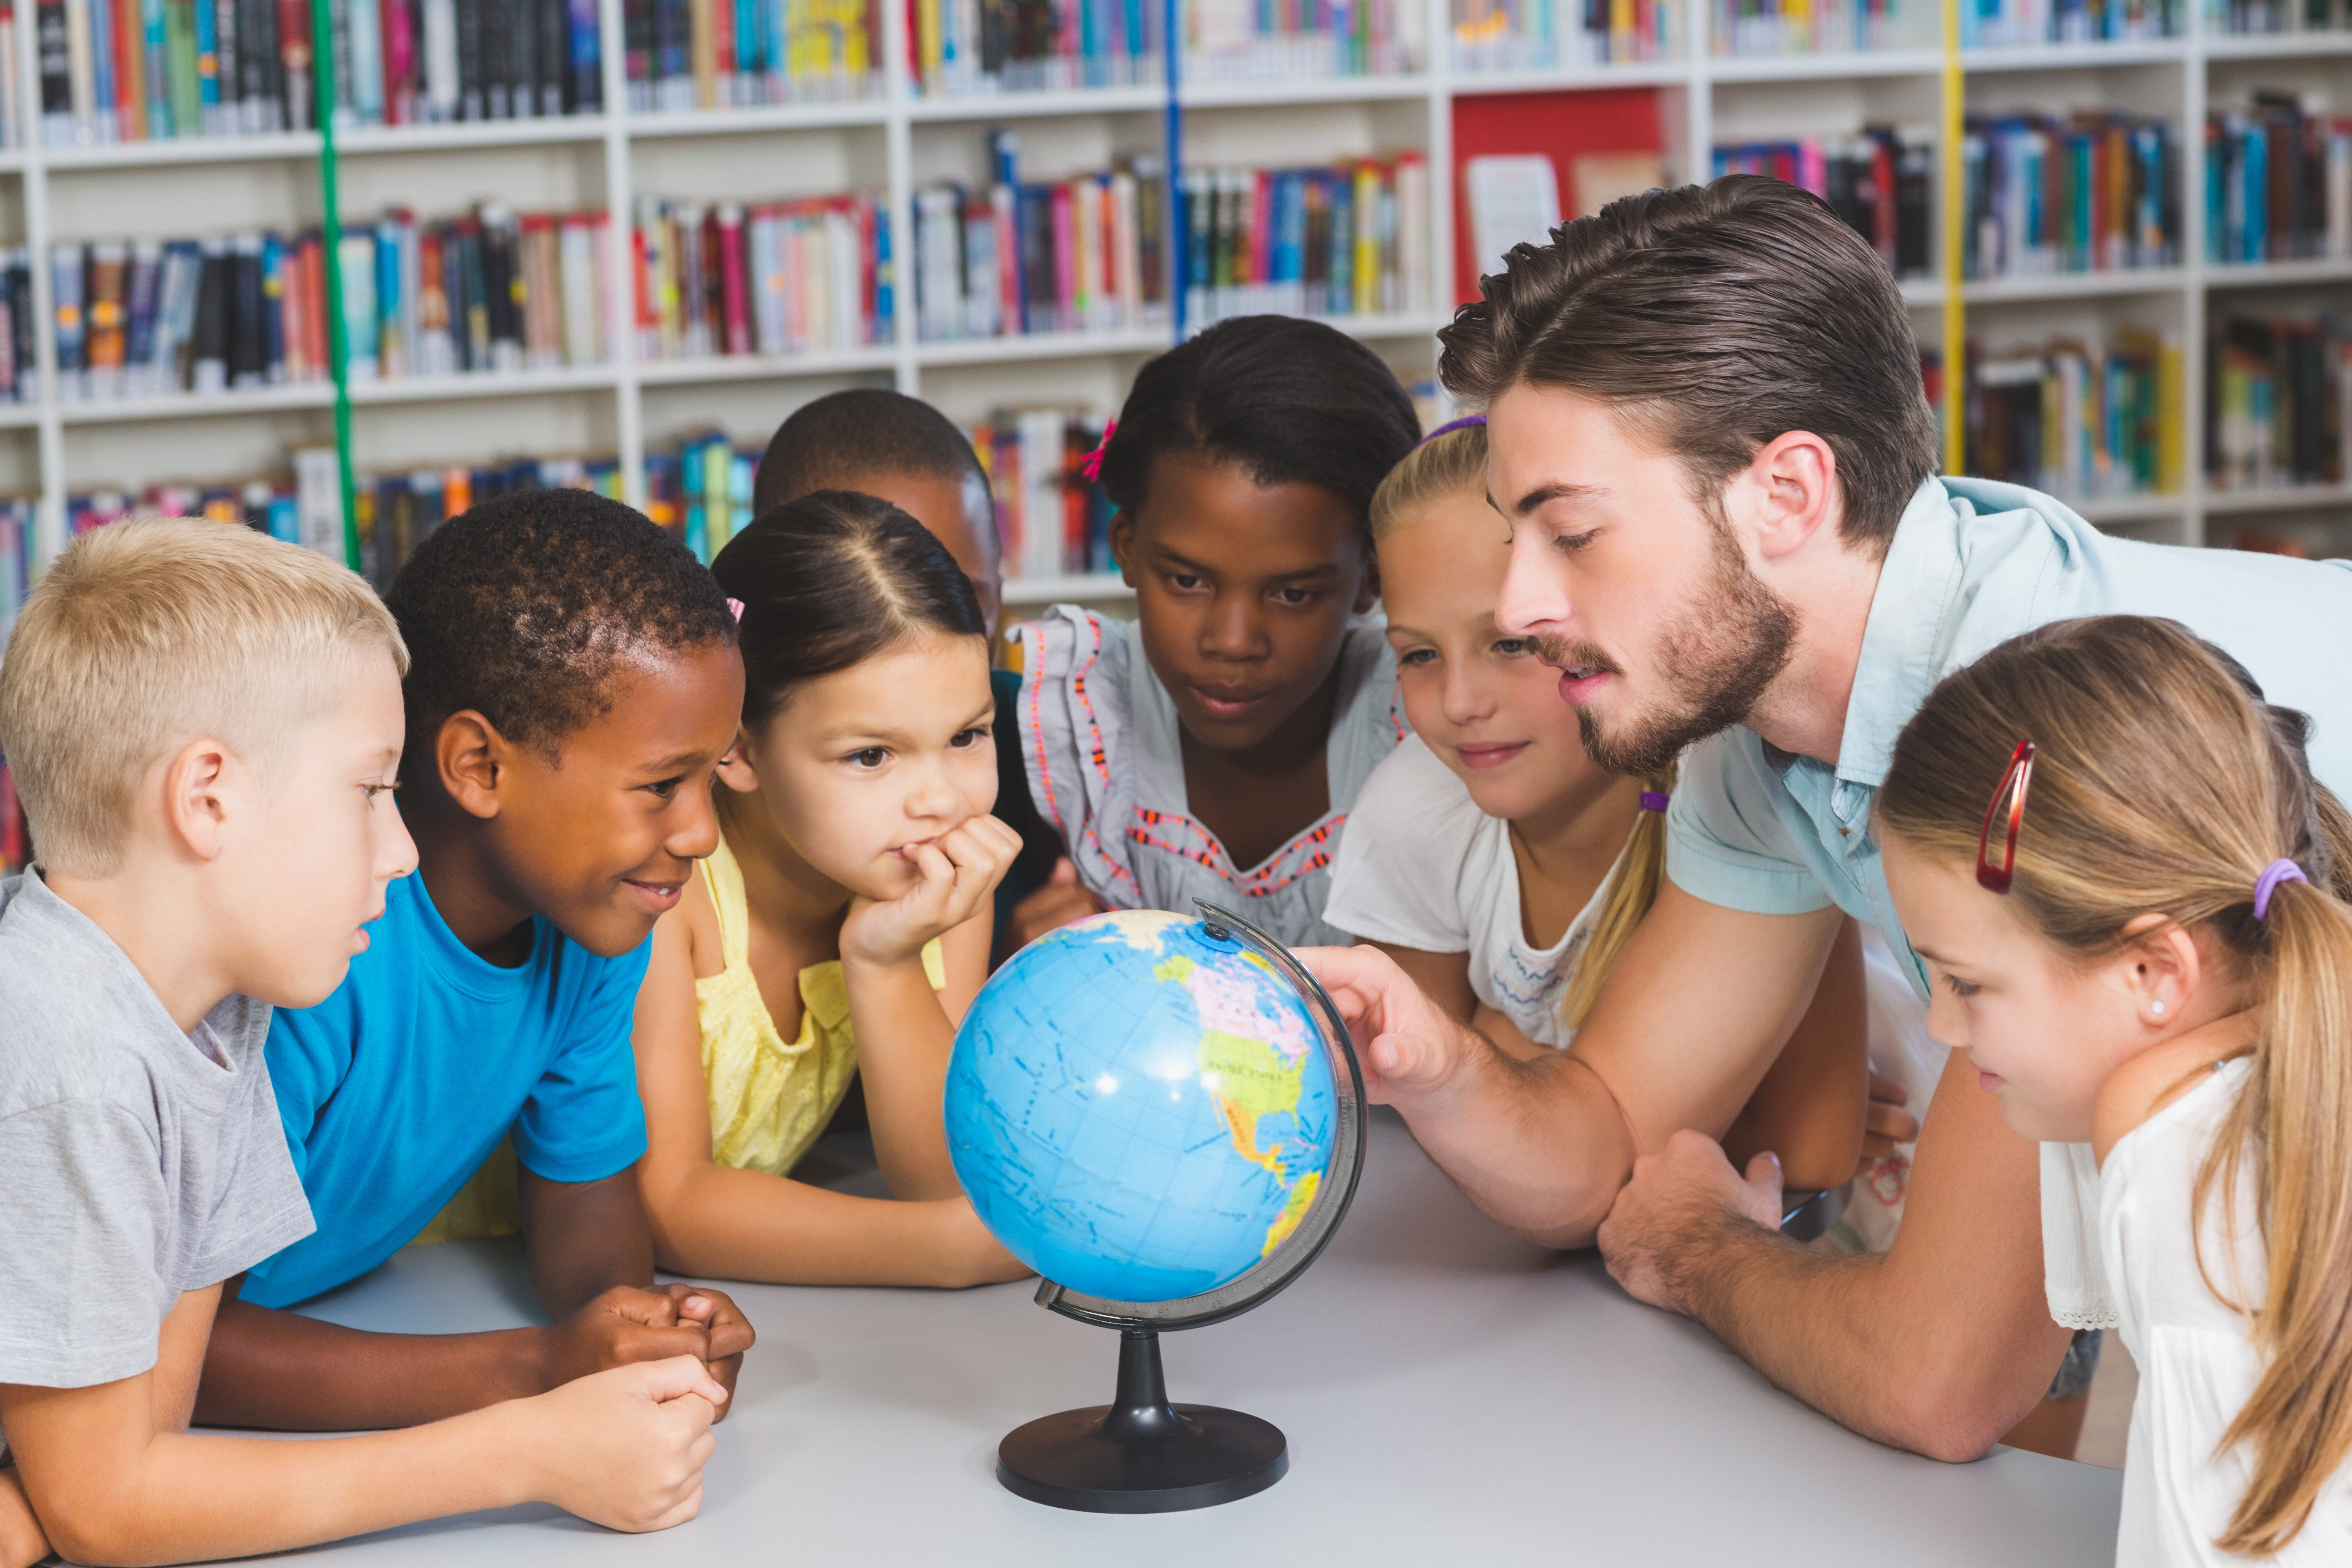 Teach cultural awareness in the classroom